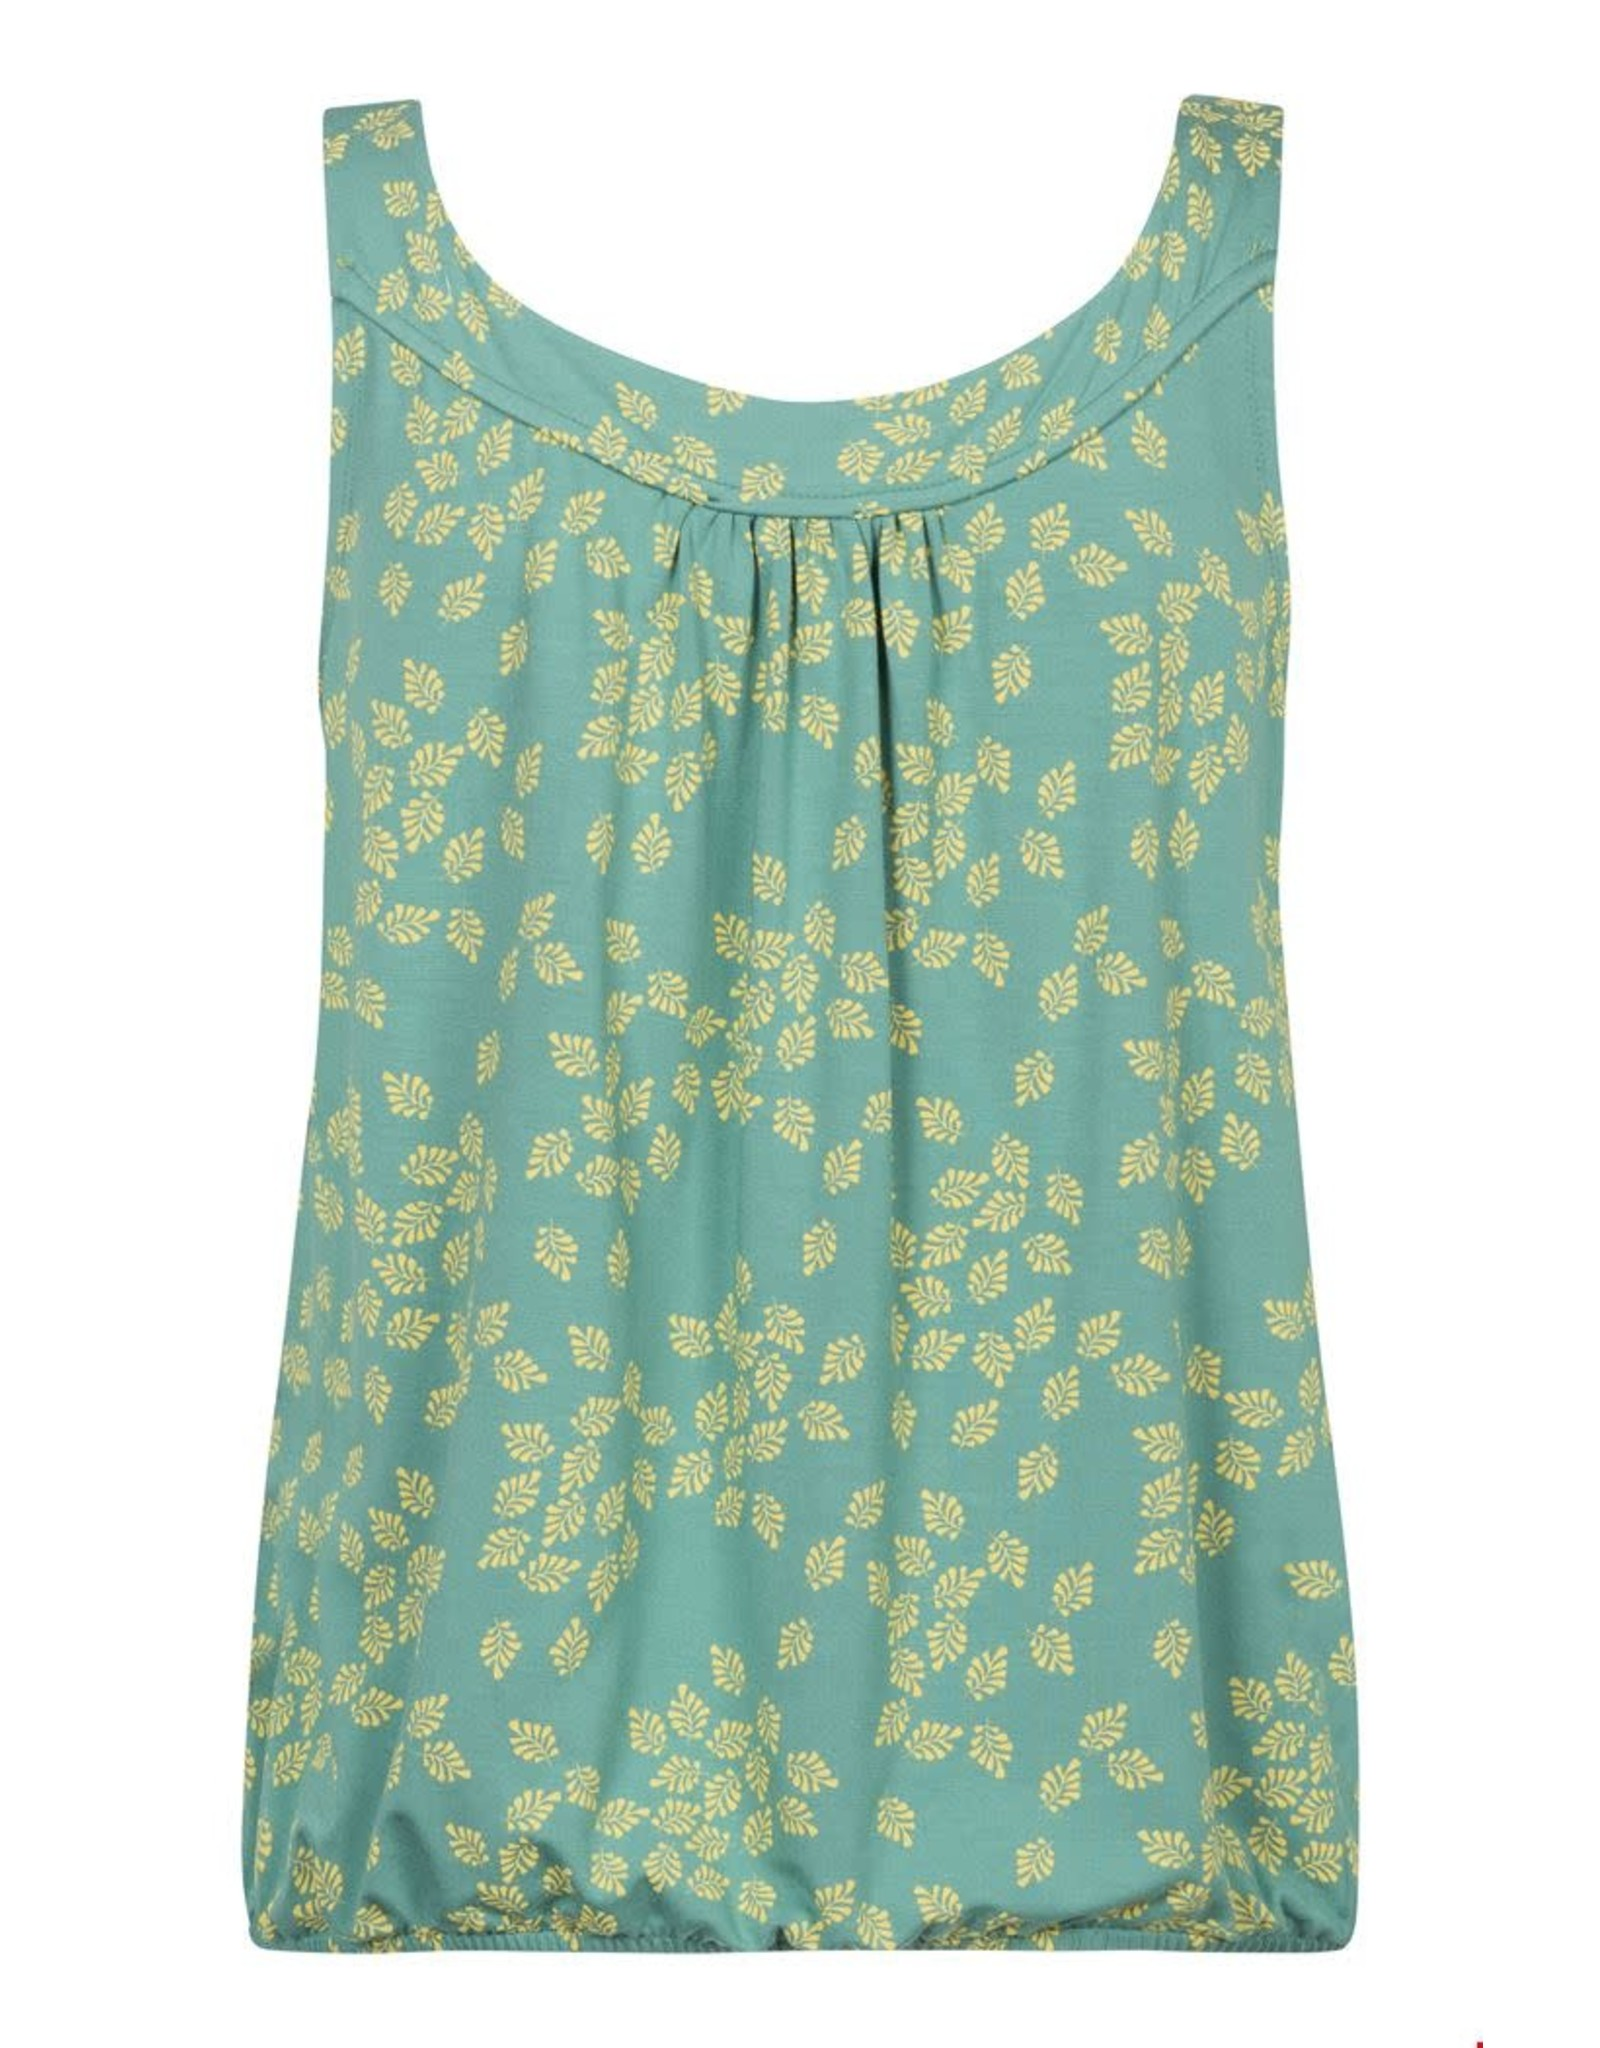 zilch Zilch Top Sleeveless Leaves Porcelain 11EVI10 100D